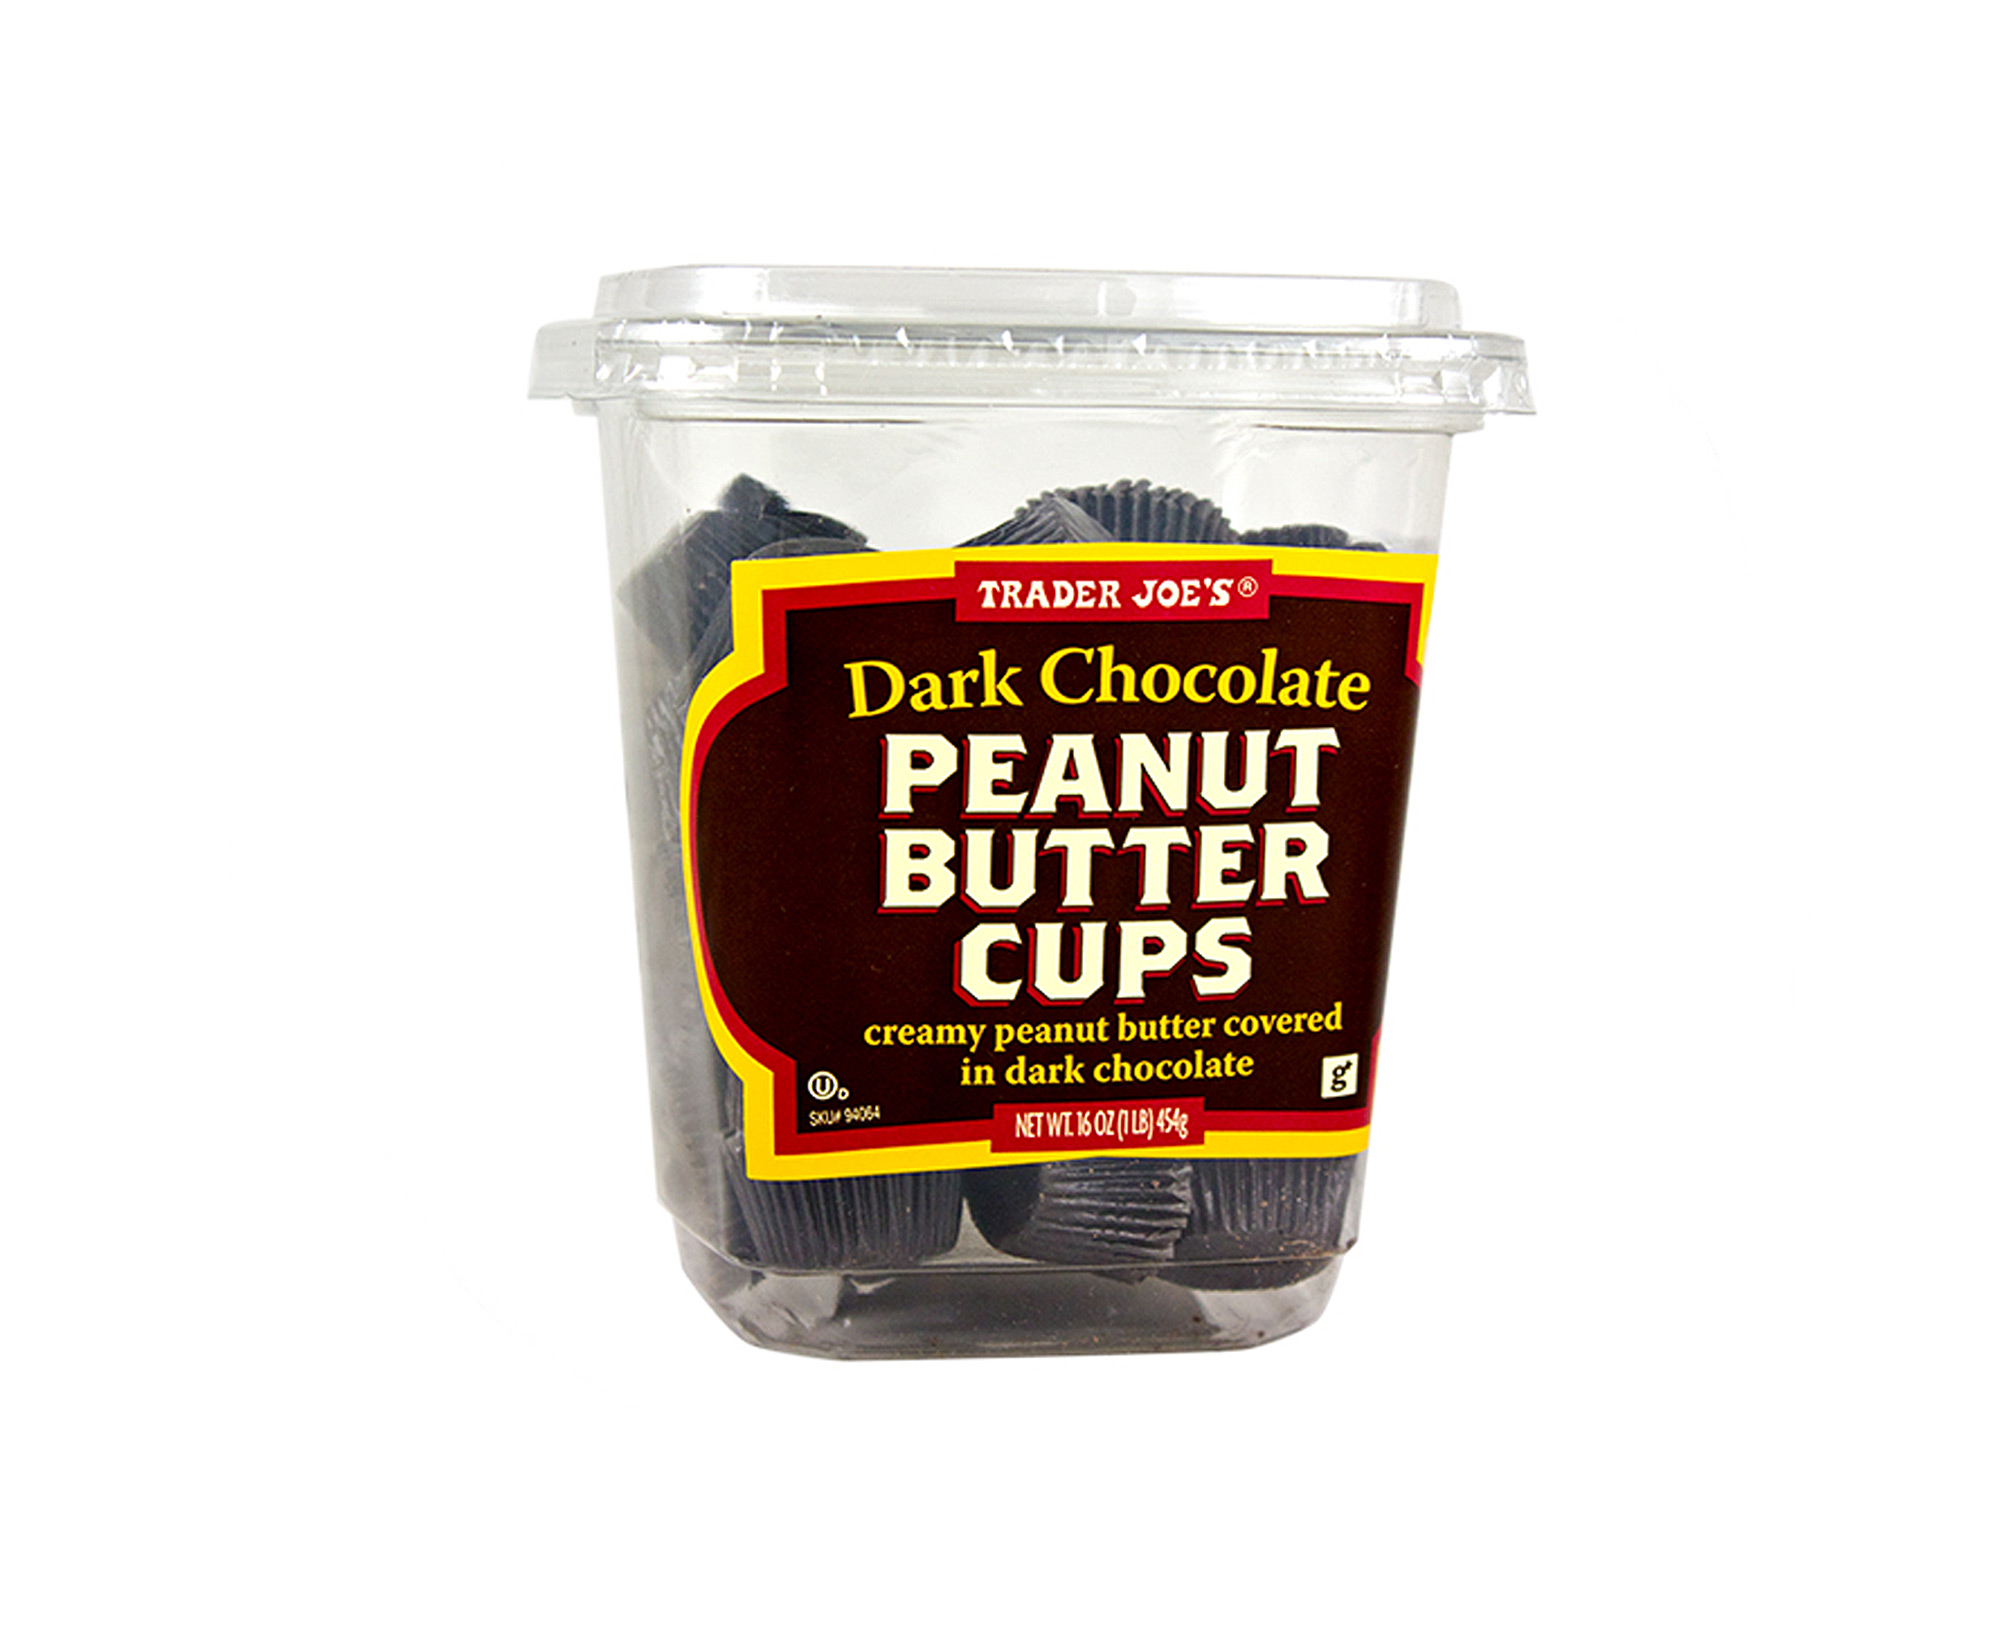 trader joes dark chocolate peanut butter cups